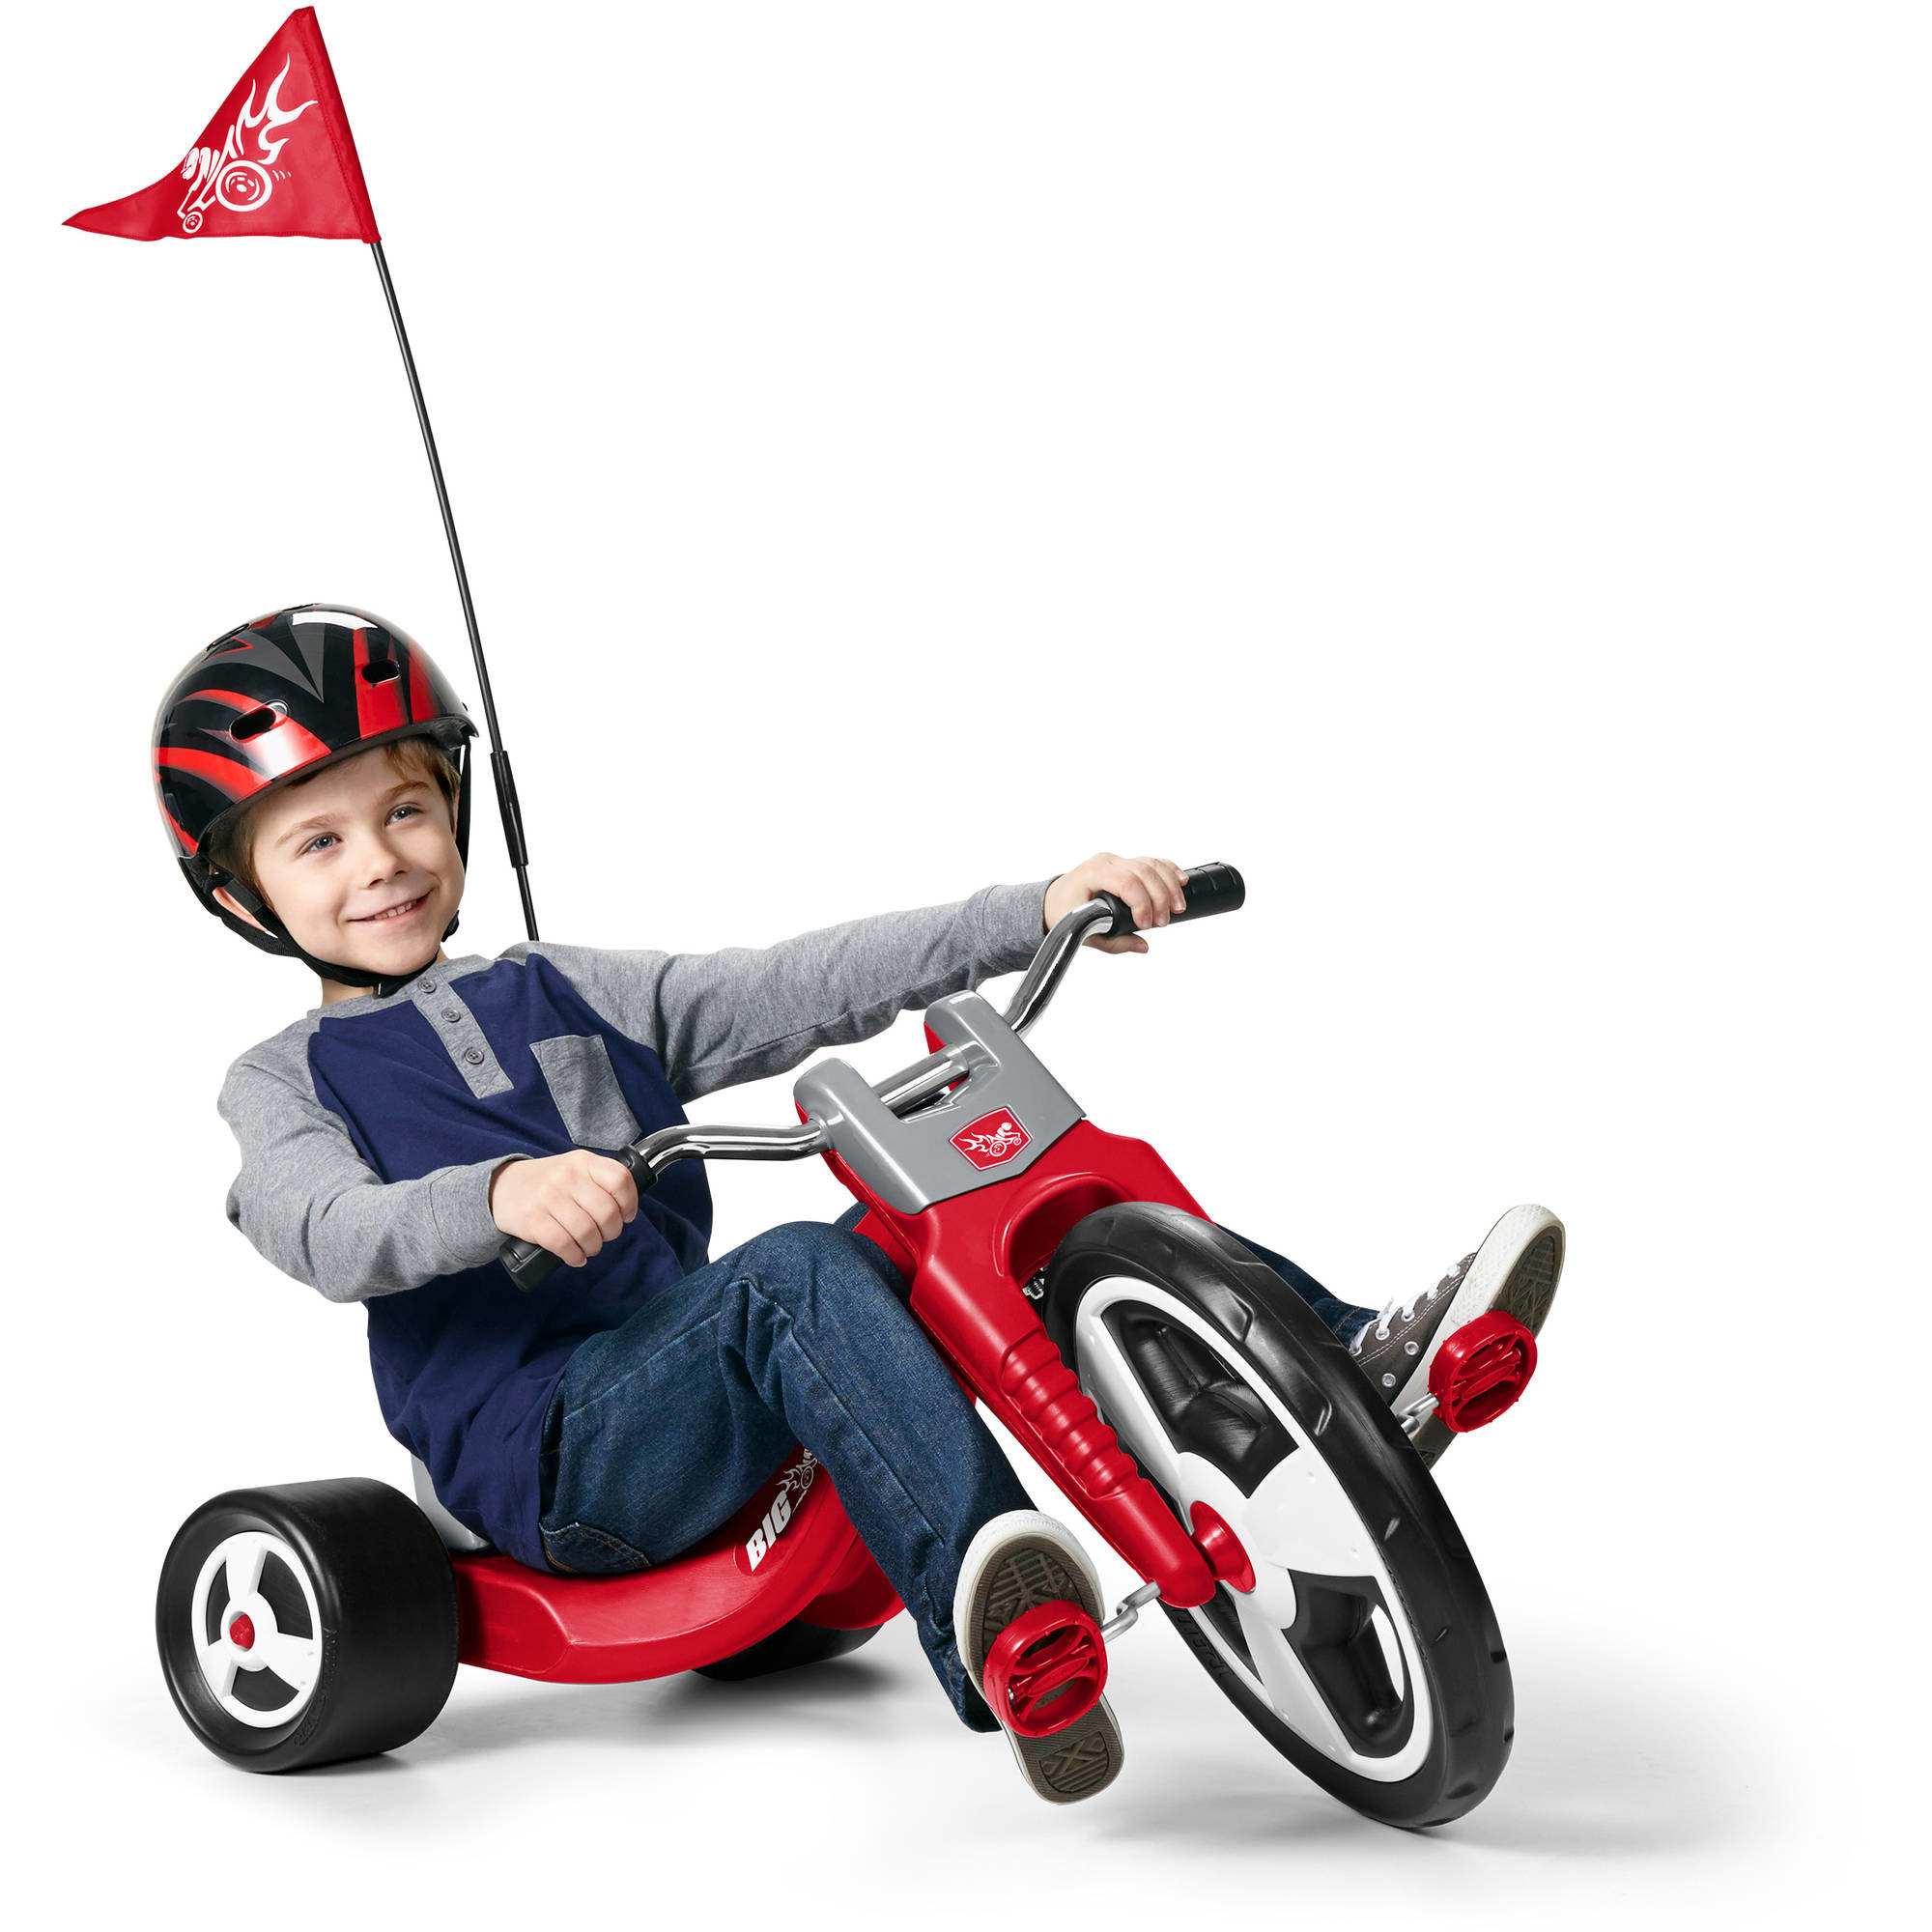 Red low-riding tricycle with racing pennant flag attached